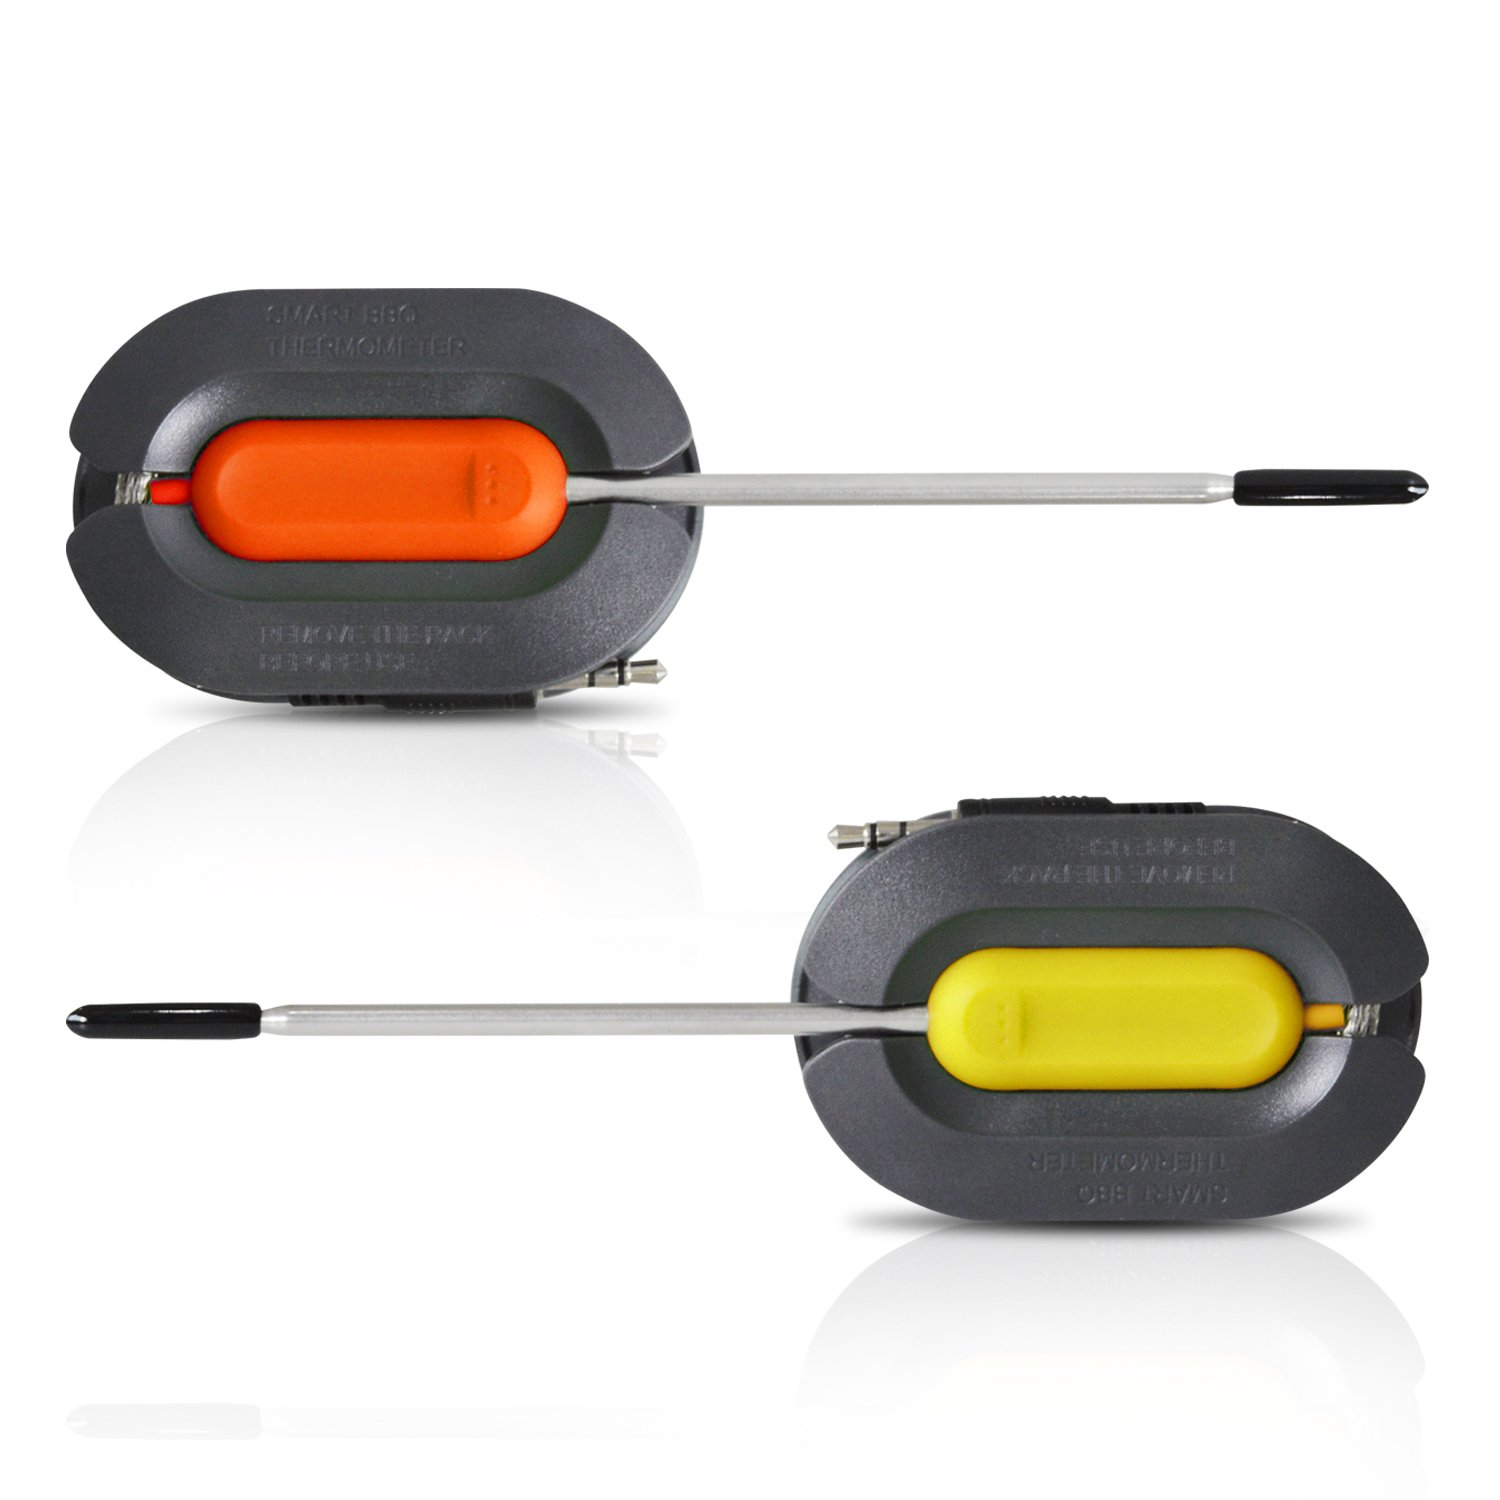 Tenergy Stainless Steel Probe for Solis Smart Food Thermometer - 2 Pack